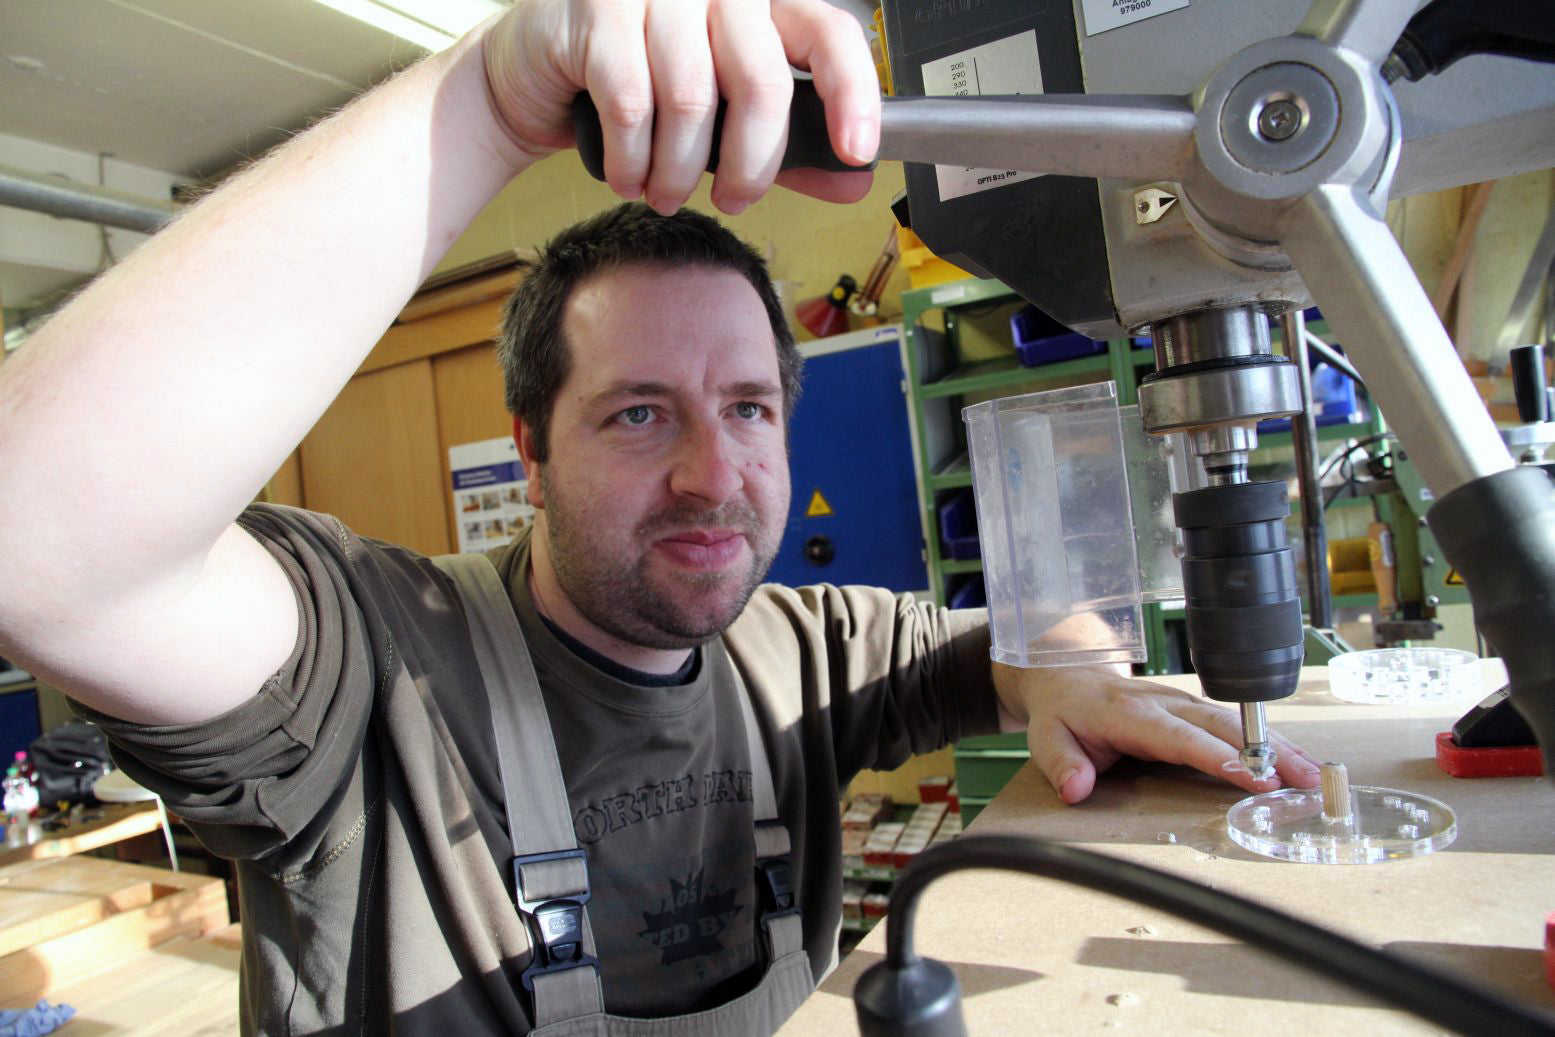 A man wearing an apron uses a drill press to build a training tool for Metalog, a top brand for experiential learning activities